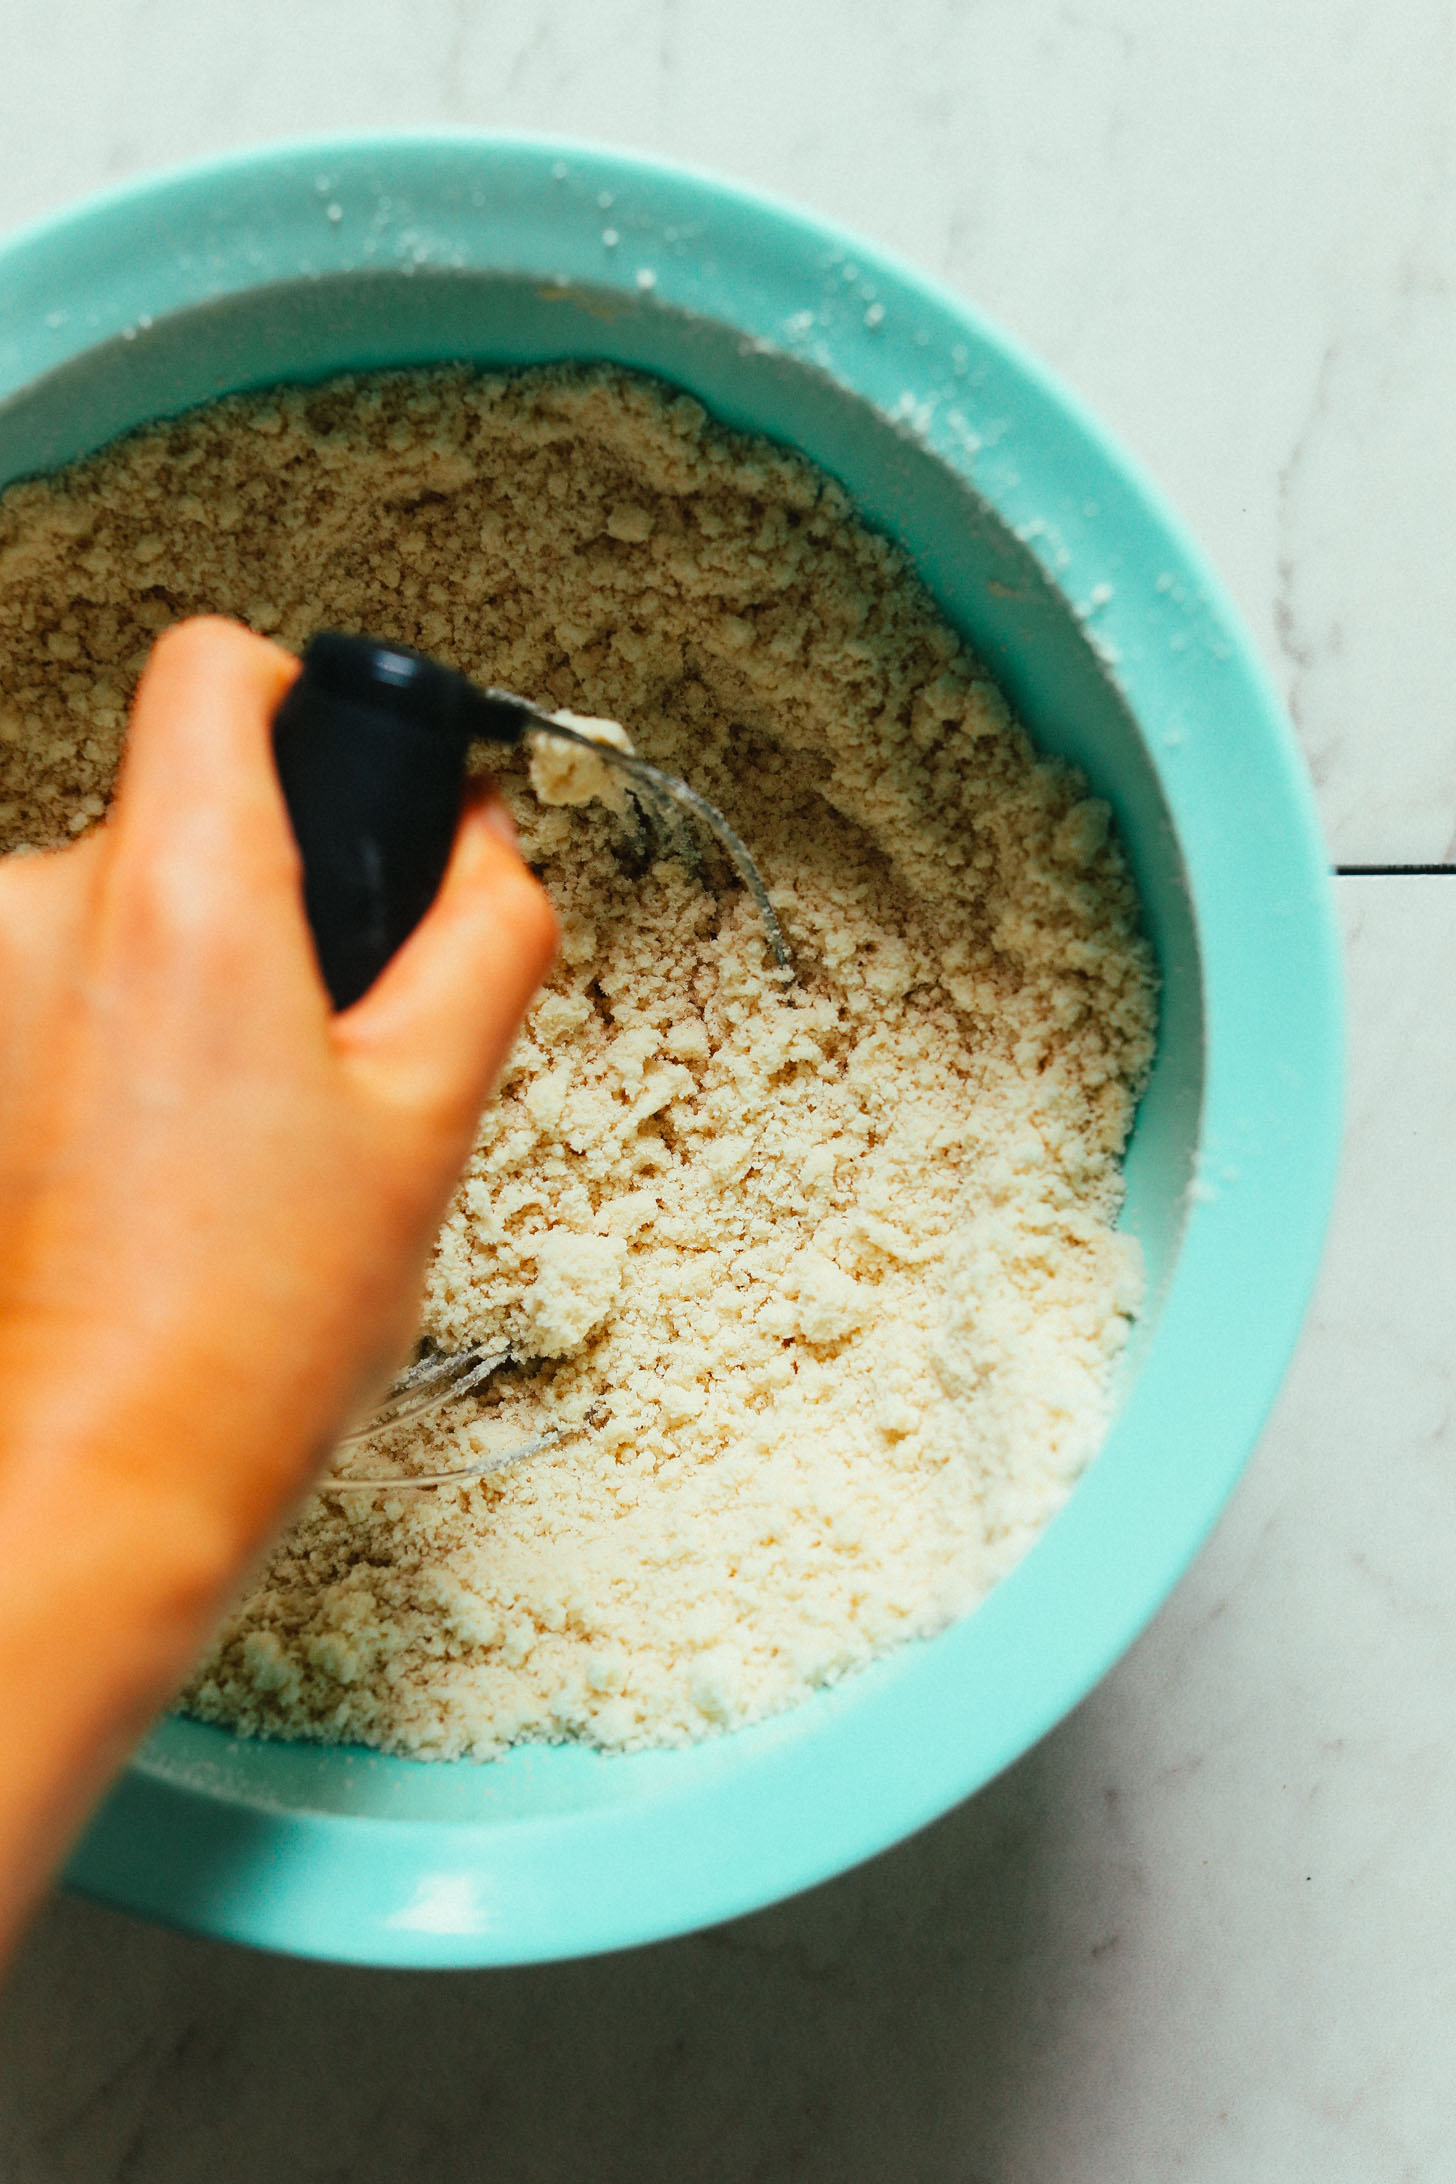 Using a pastry cutter to mix cinnamon roll ingredients